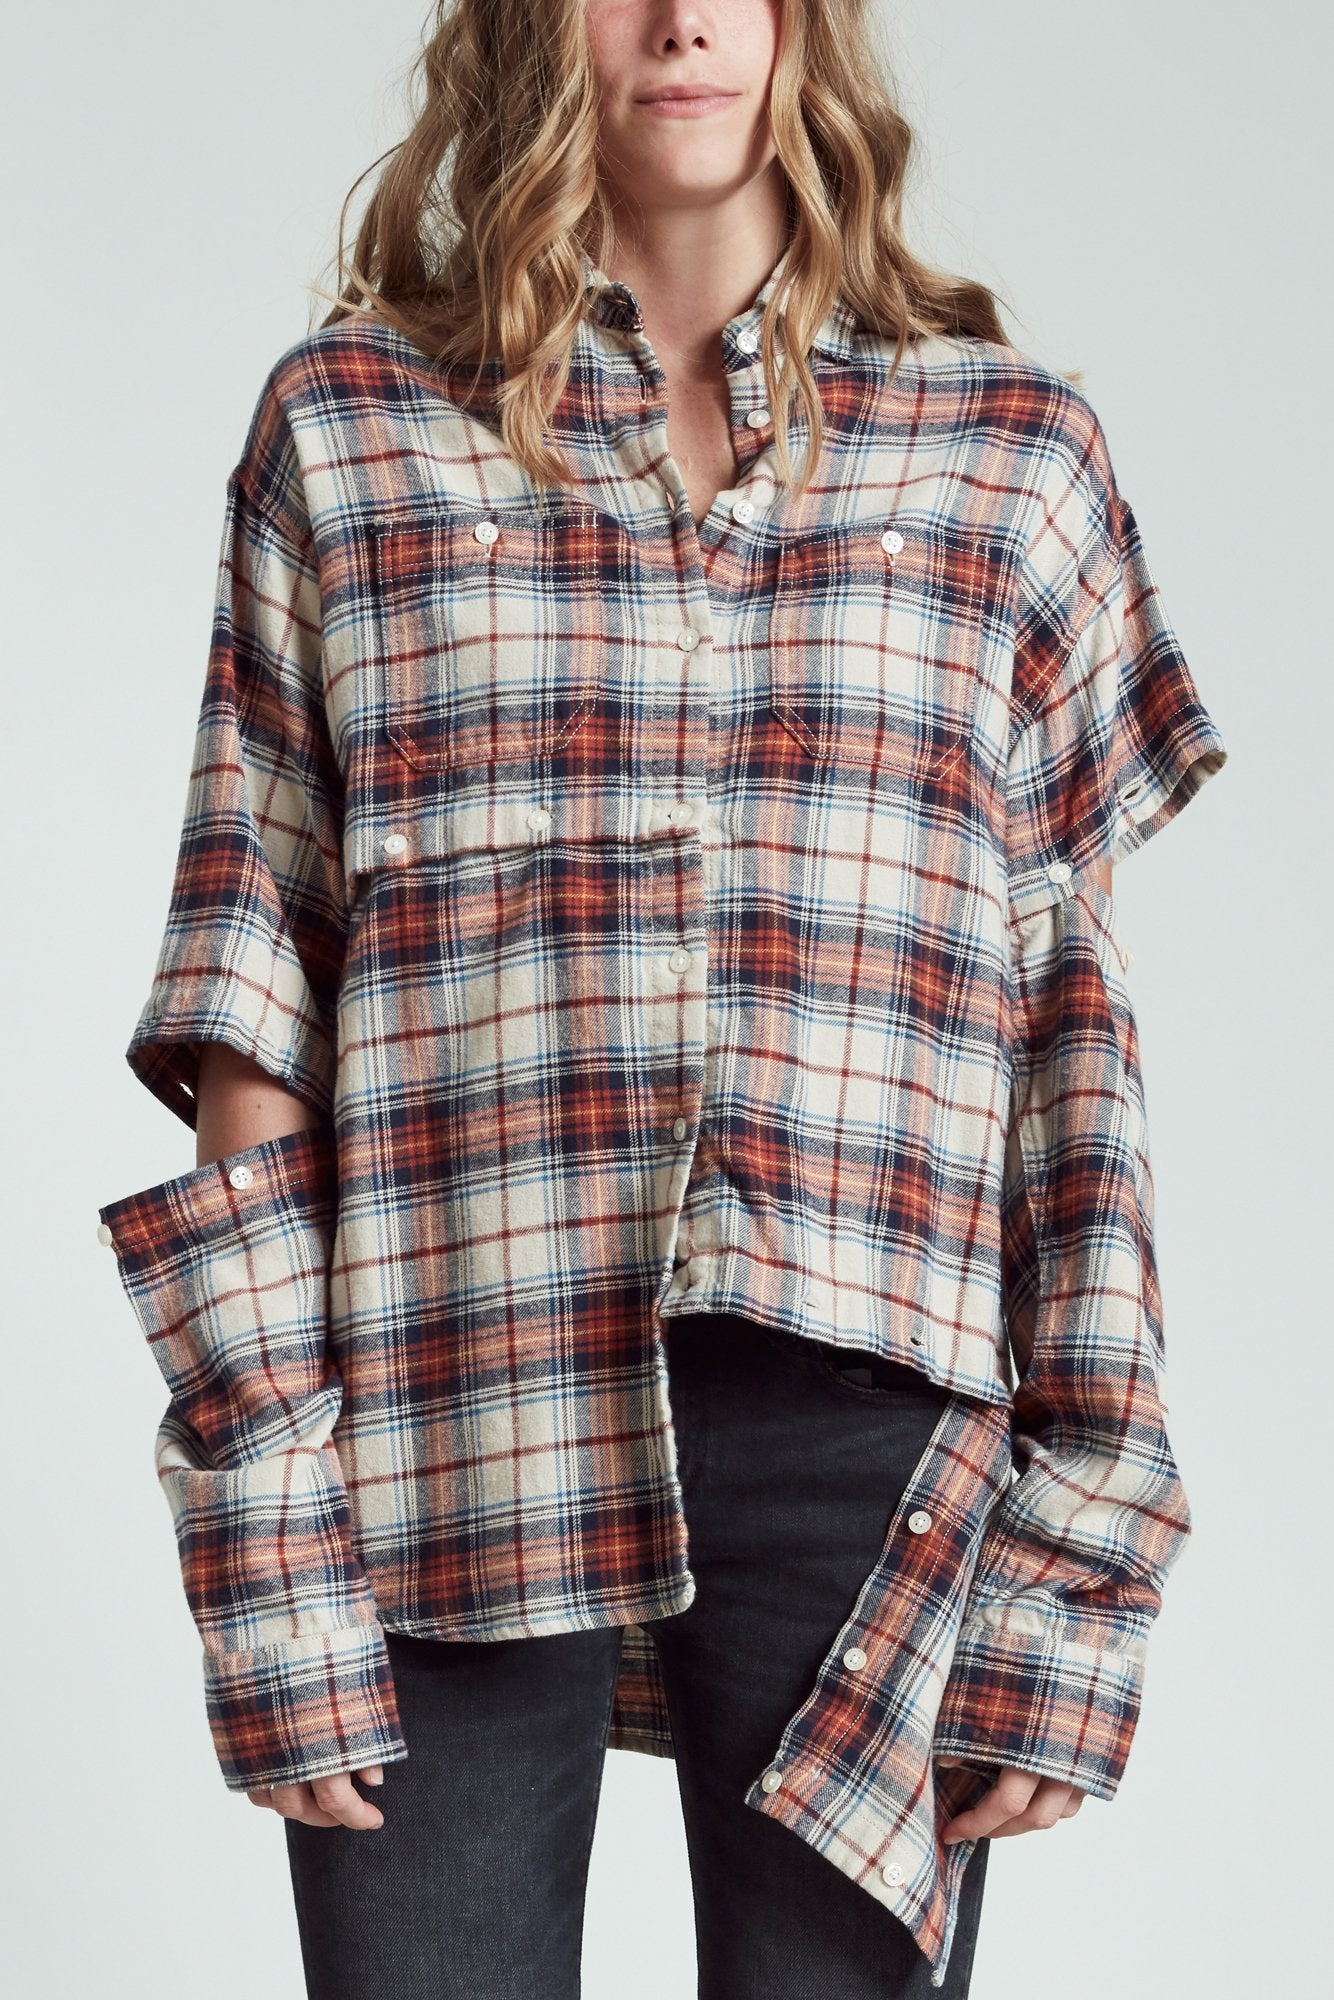 Undone Shirt - Orange Plaid